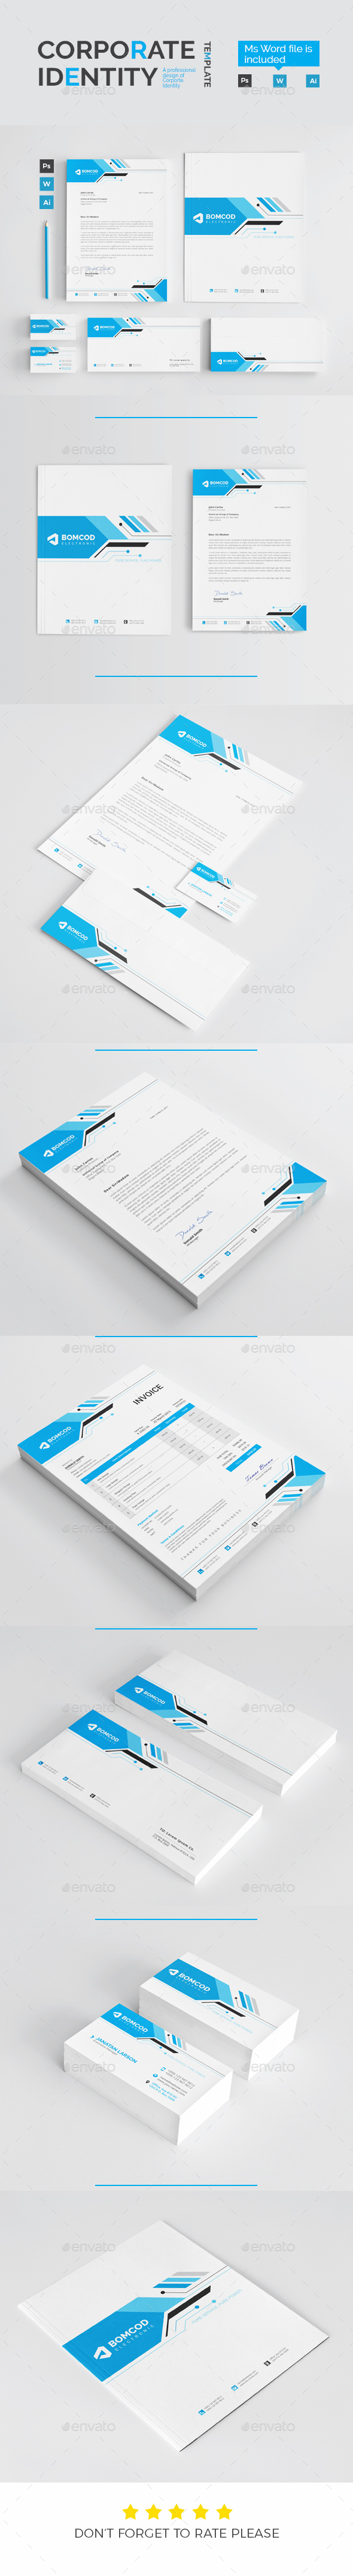 GraphicRiver Corporate Identity 21149926